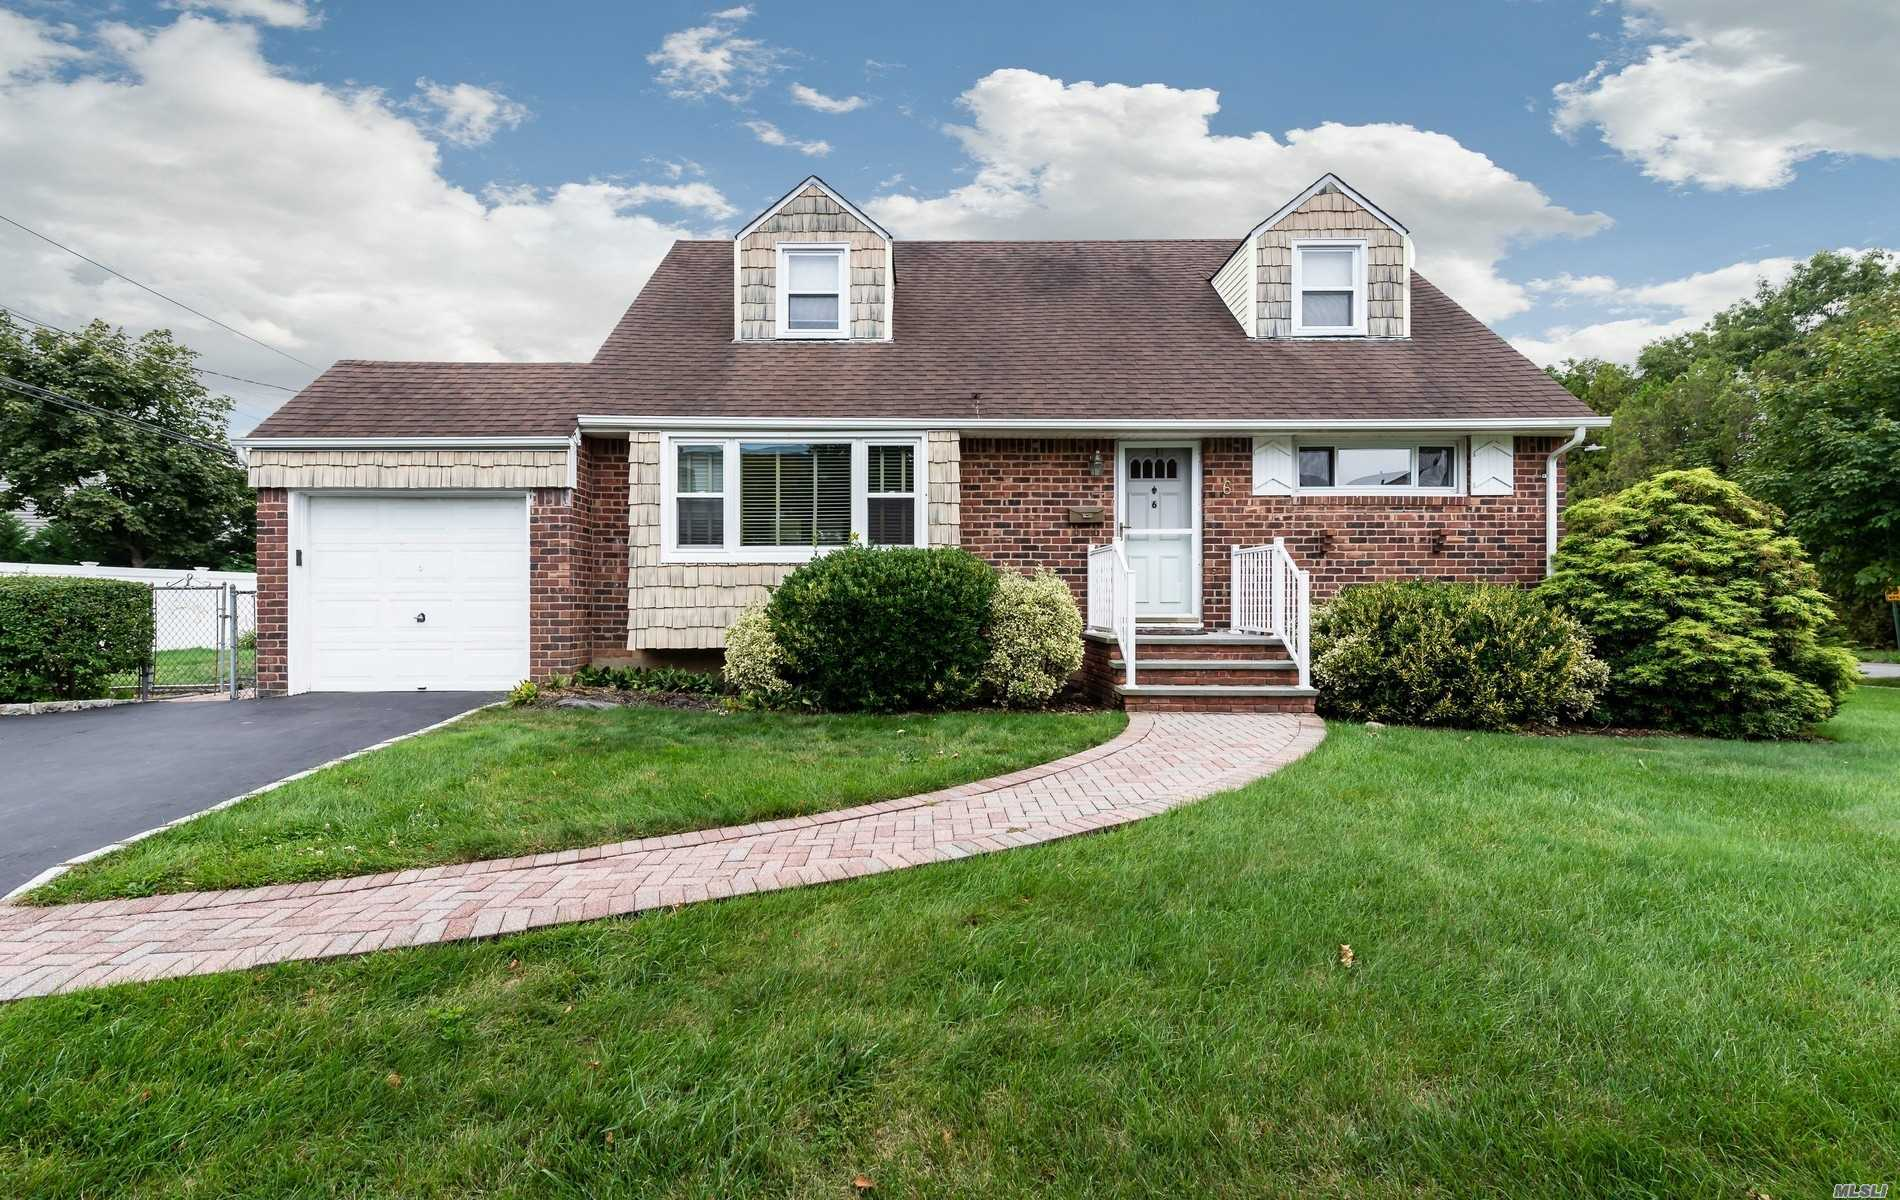 6 Linda Ln - Syosset, New York